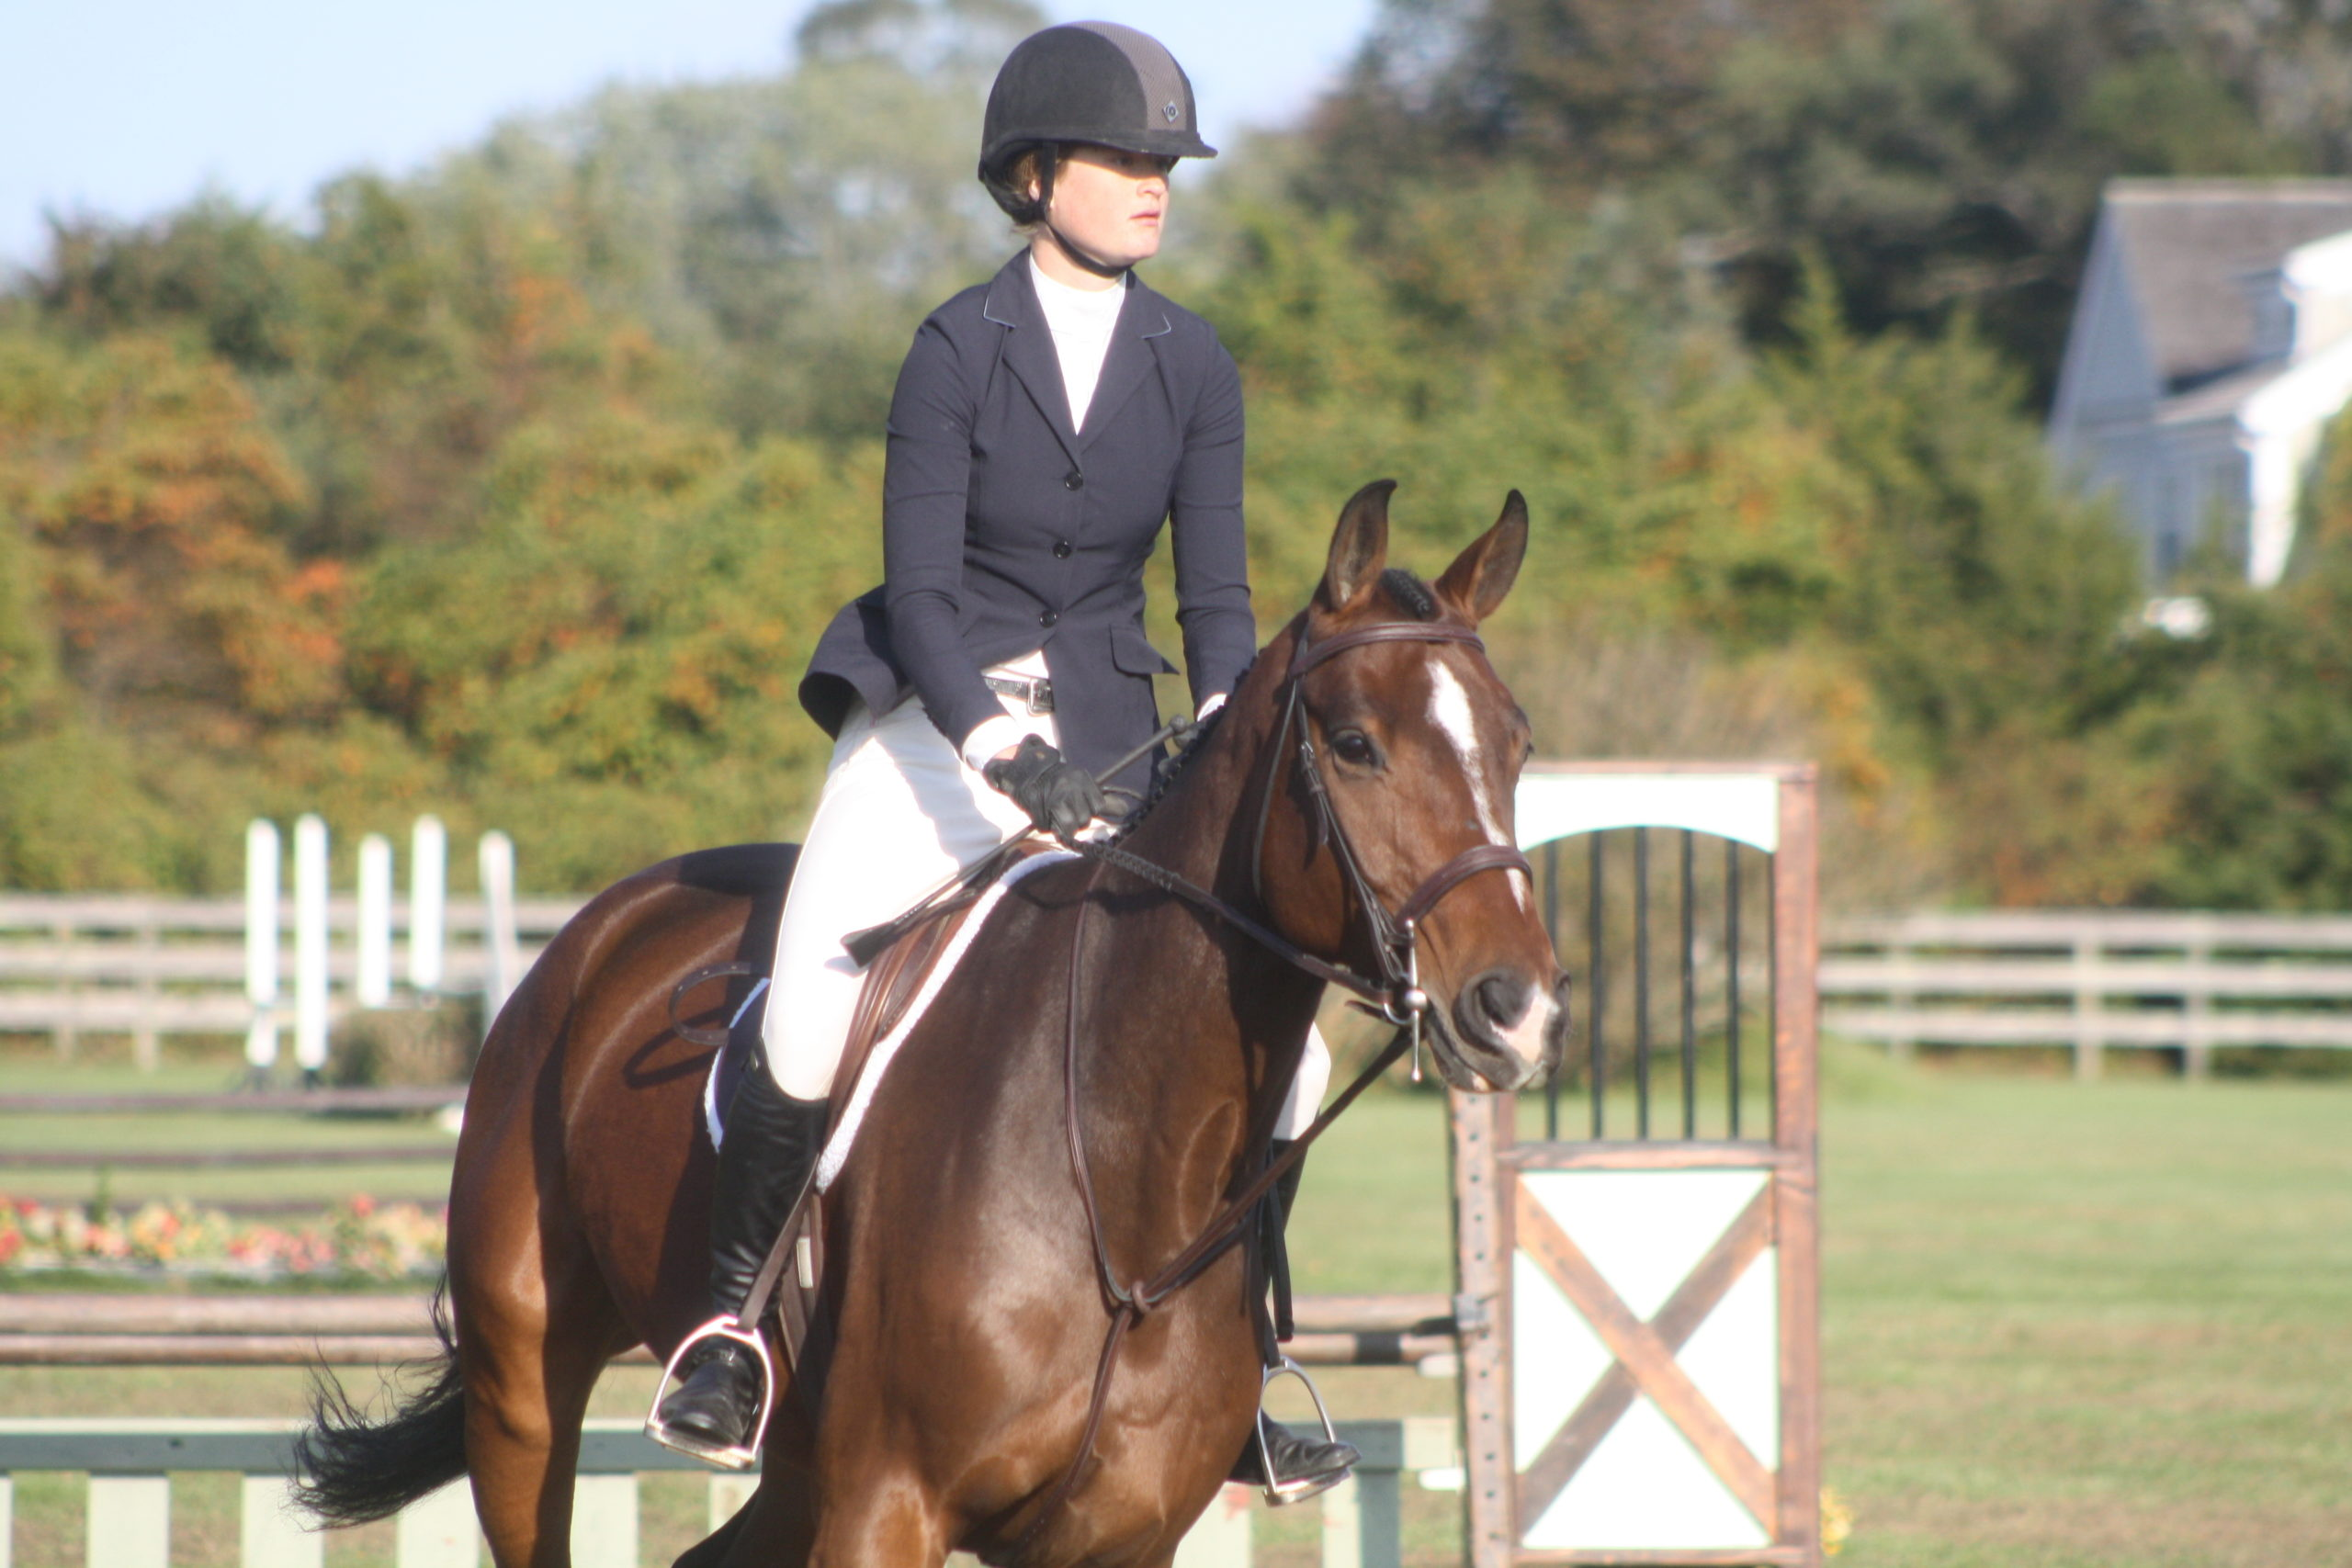 Phoebe Topping of Swan Creek Farm with her horse John Courage.  CAILIN RILEY